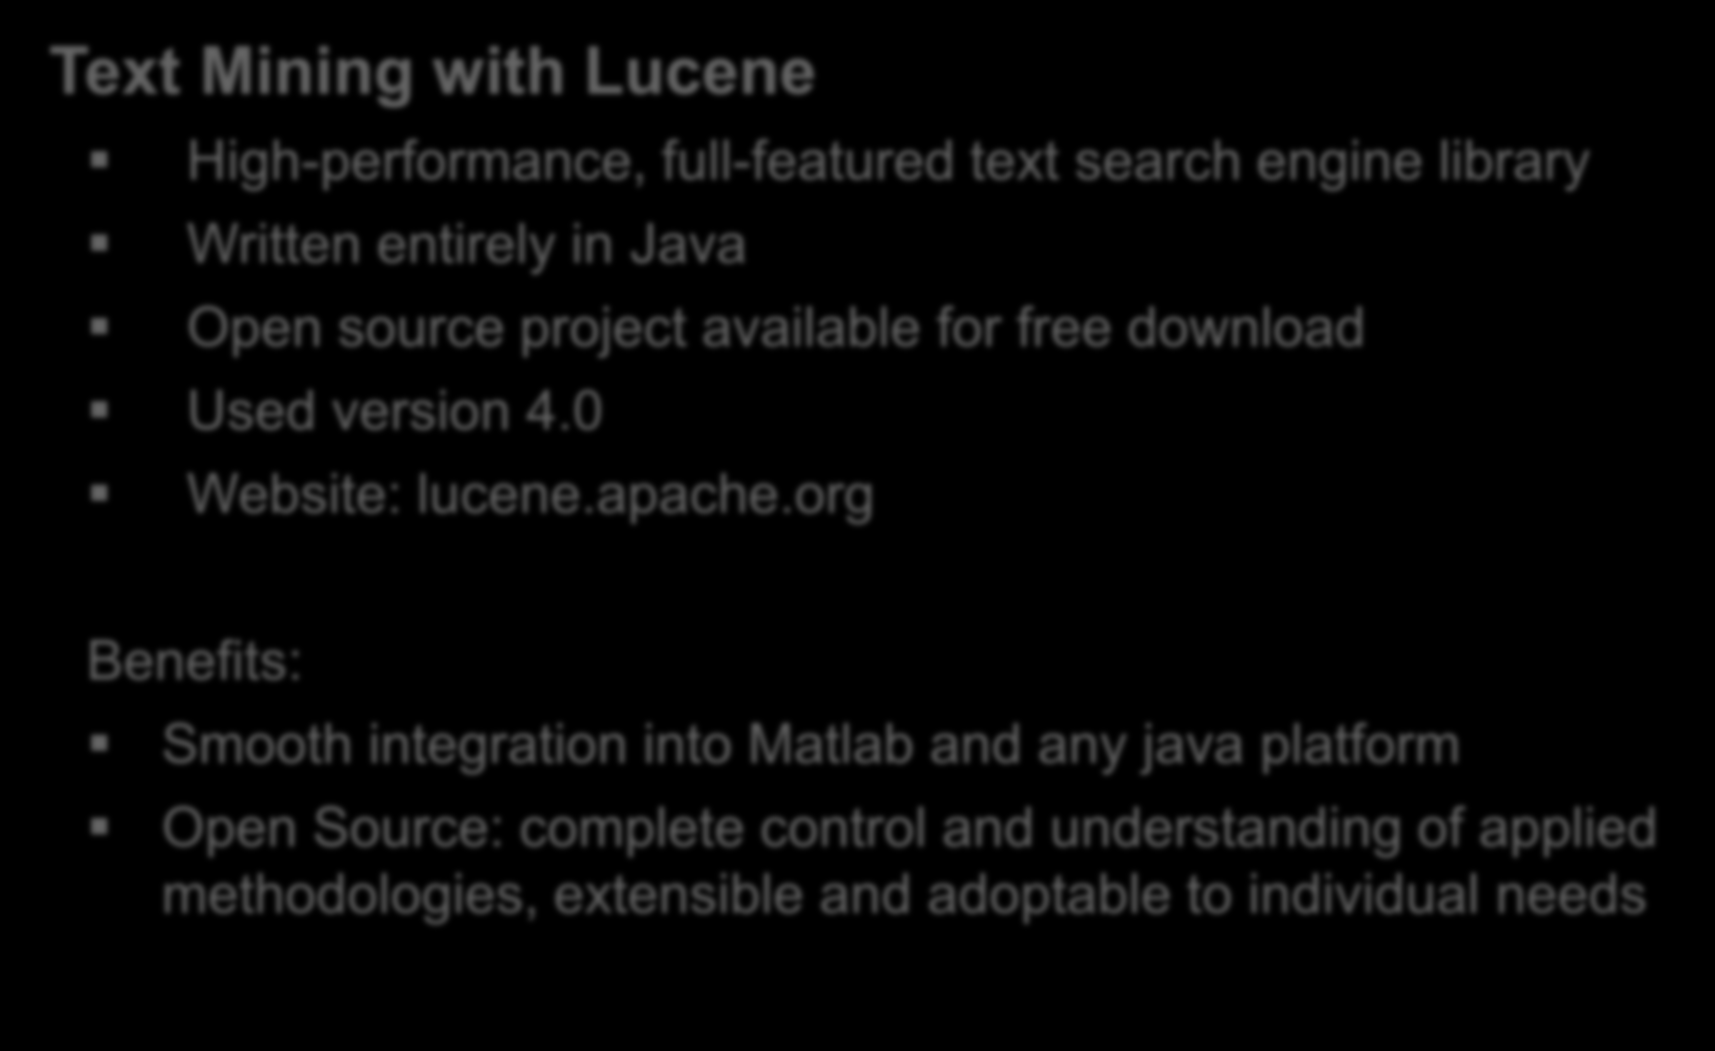 Mapping Applications to Topics Text Mining with Lucene High-performance, full-featured text search engine library Written entirely in Java Open source project available for free download Used version